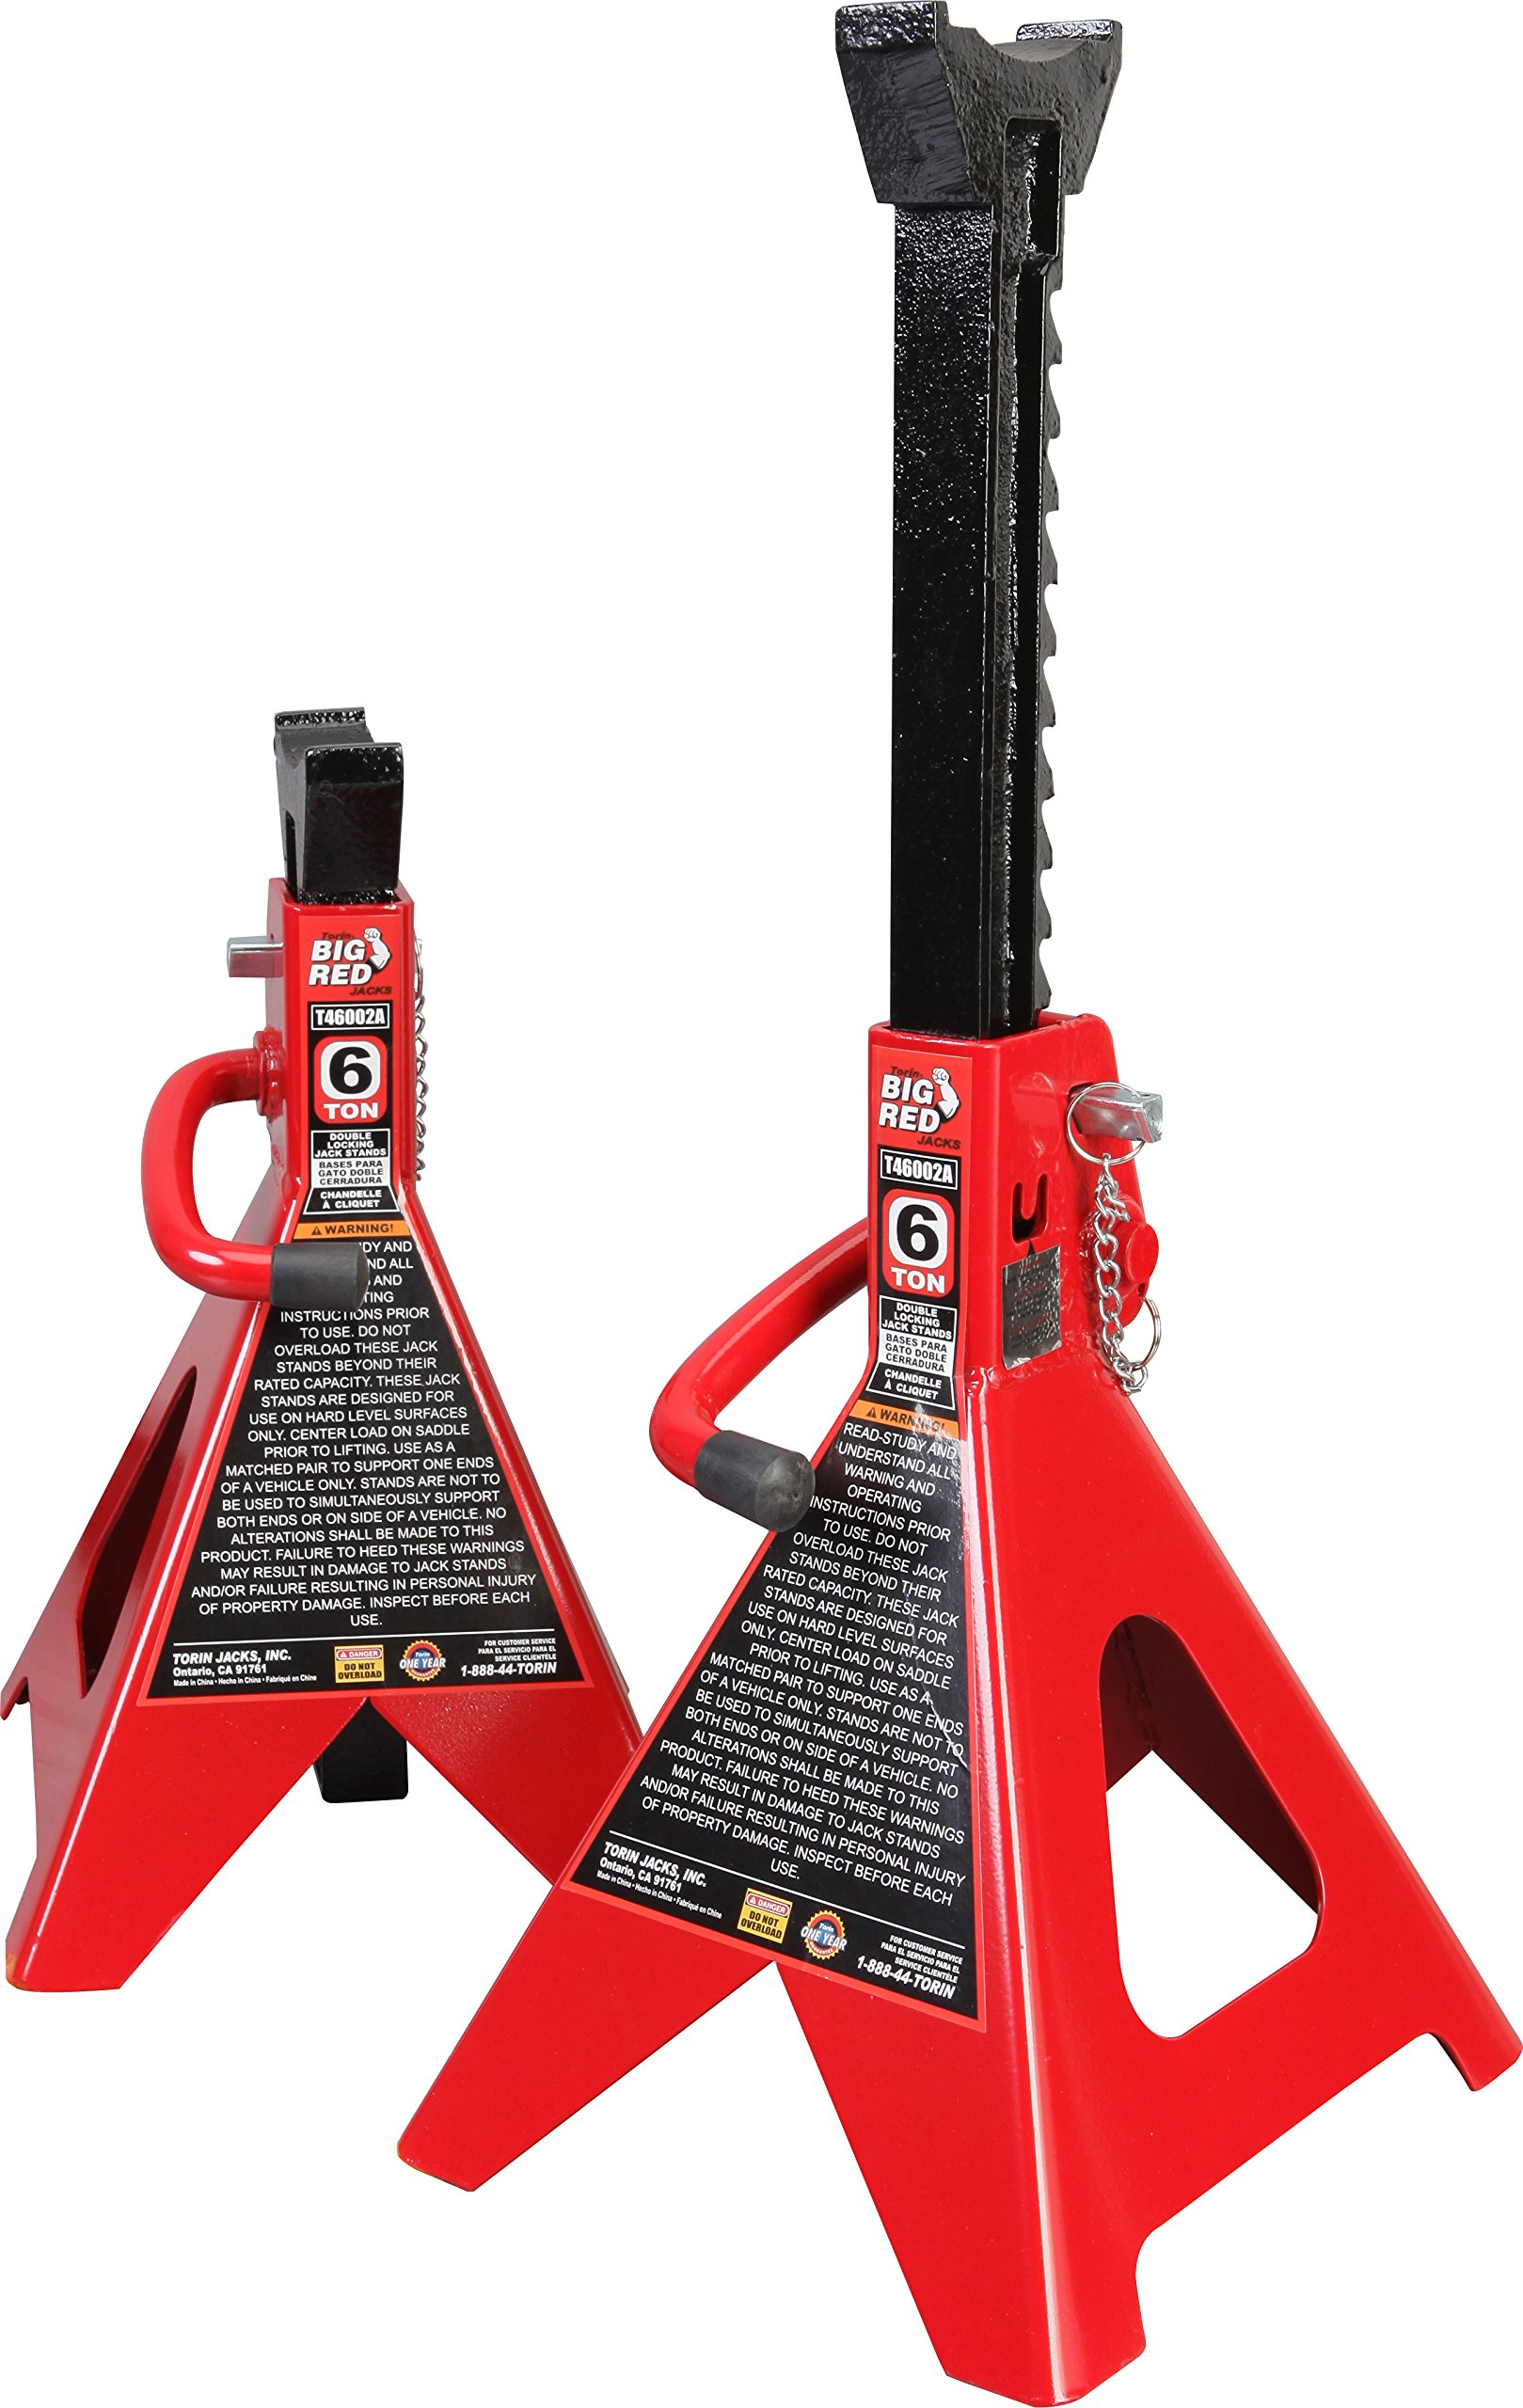 Torin Big Red Steel Jack Stands: Double Locking, 6 Ton Capacity, 1 Pair by Torin